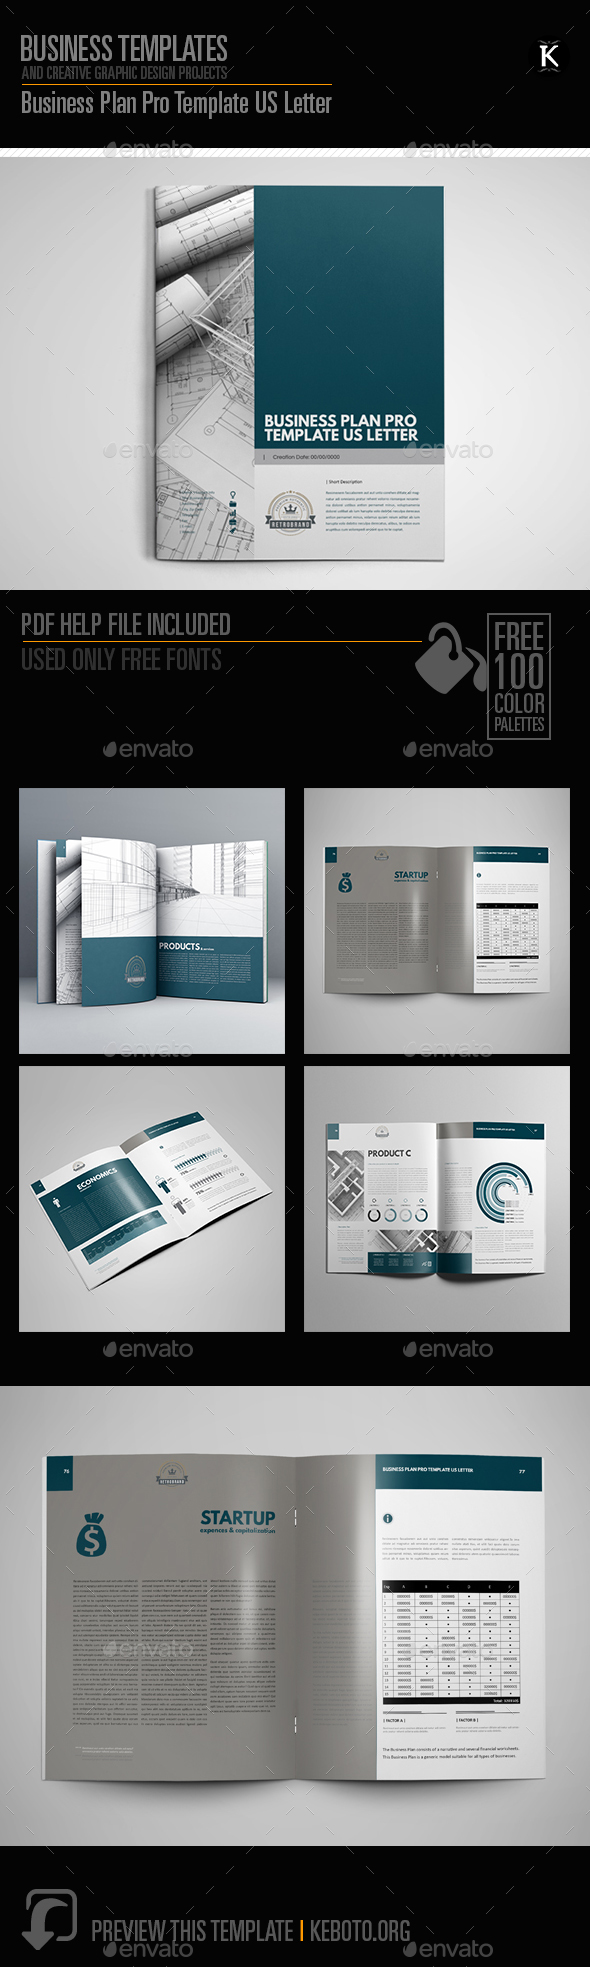 Business plan pro template us letter by keboto graphicriver business plan pro template us letter print templates flashek Images